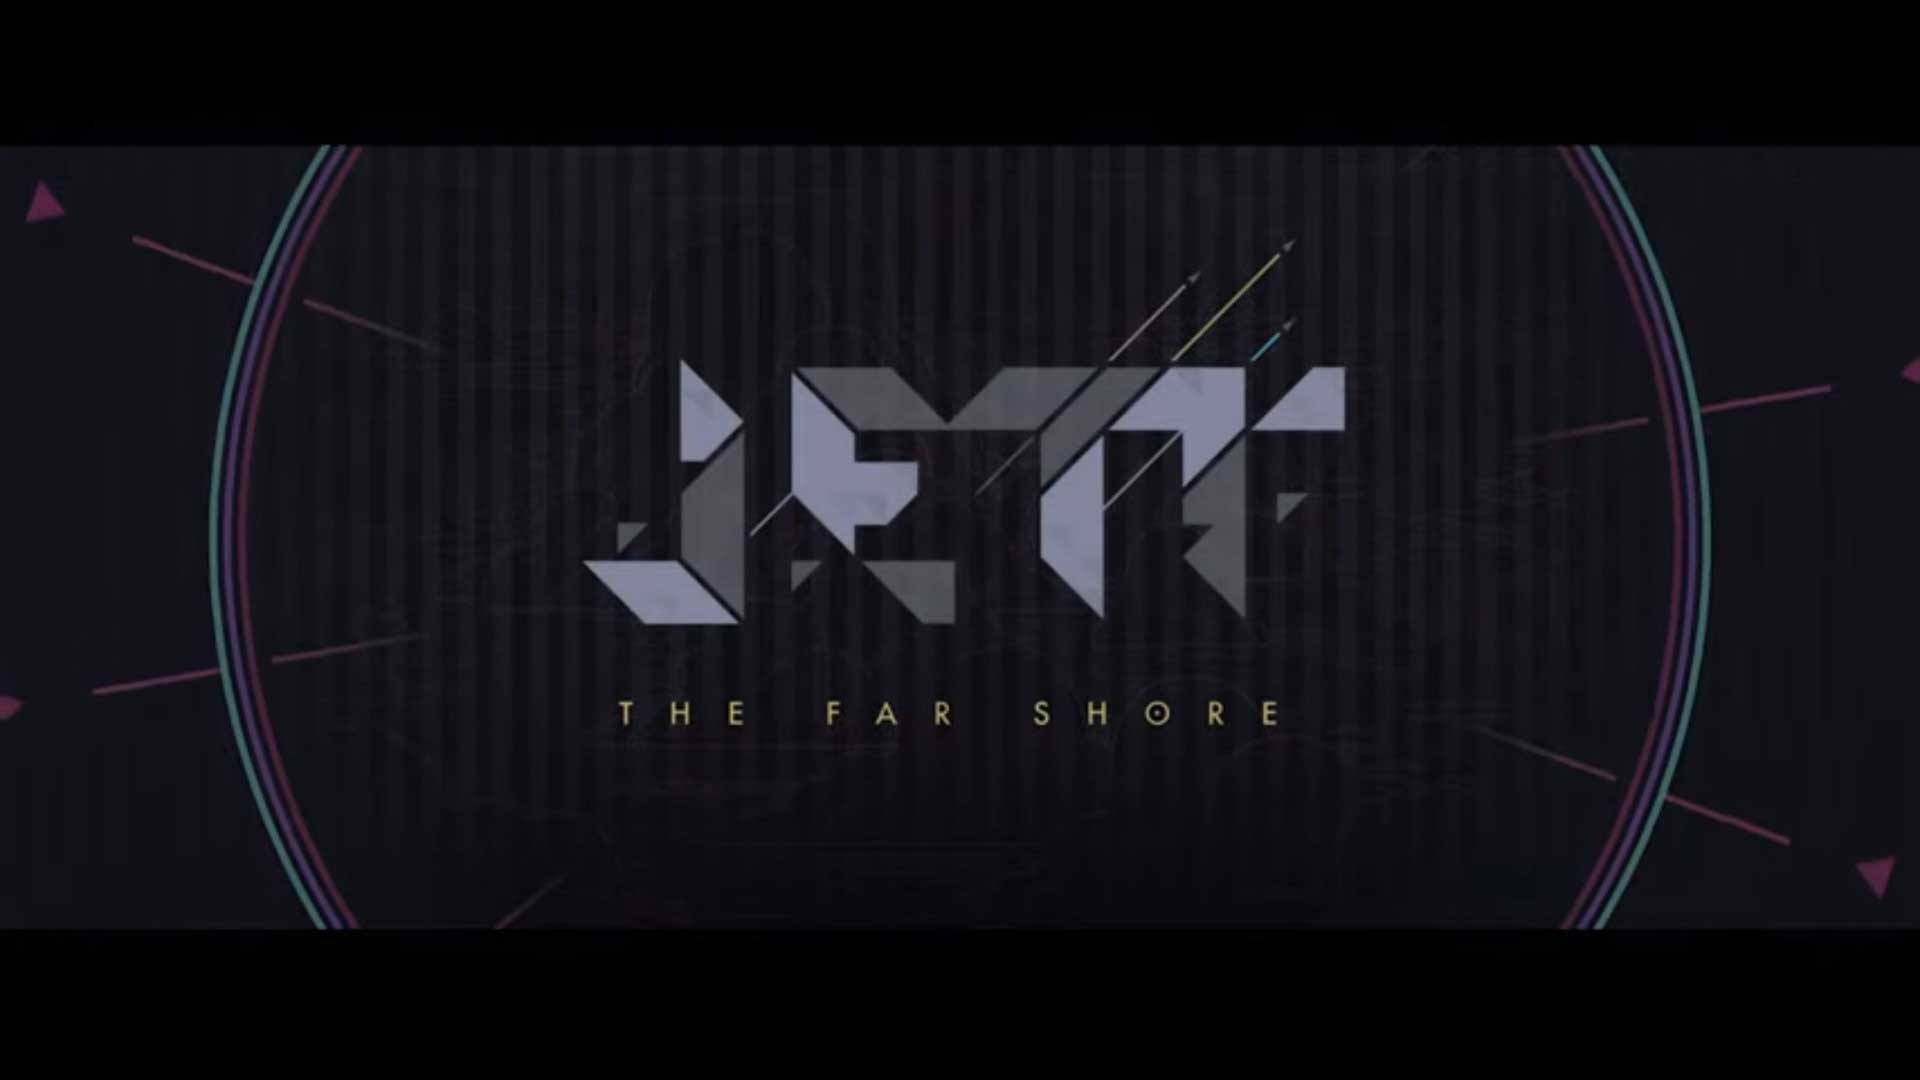 Jett: The Far Shore